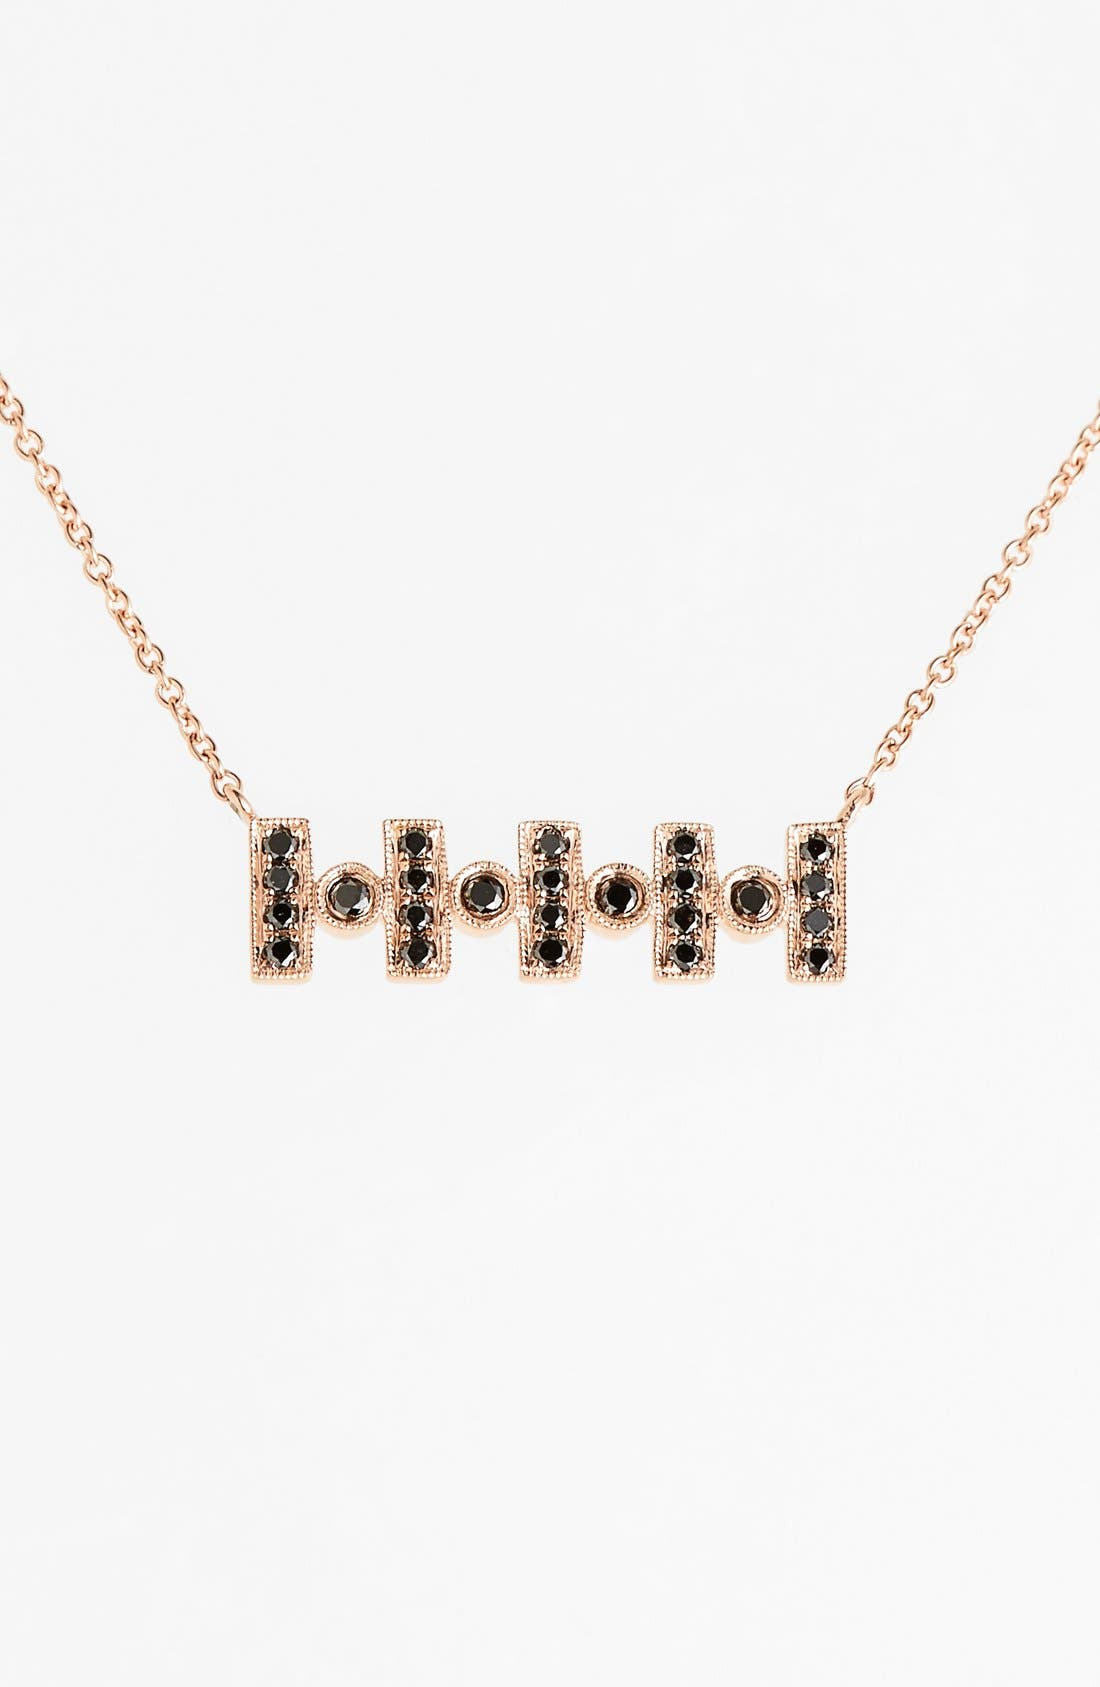 Main Image - Dana Rebecca Designs 'Reese Brooklyn' Diamond Pendant Necklace